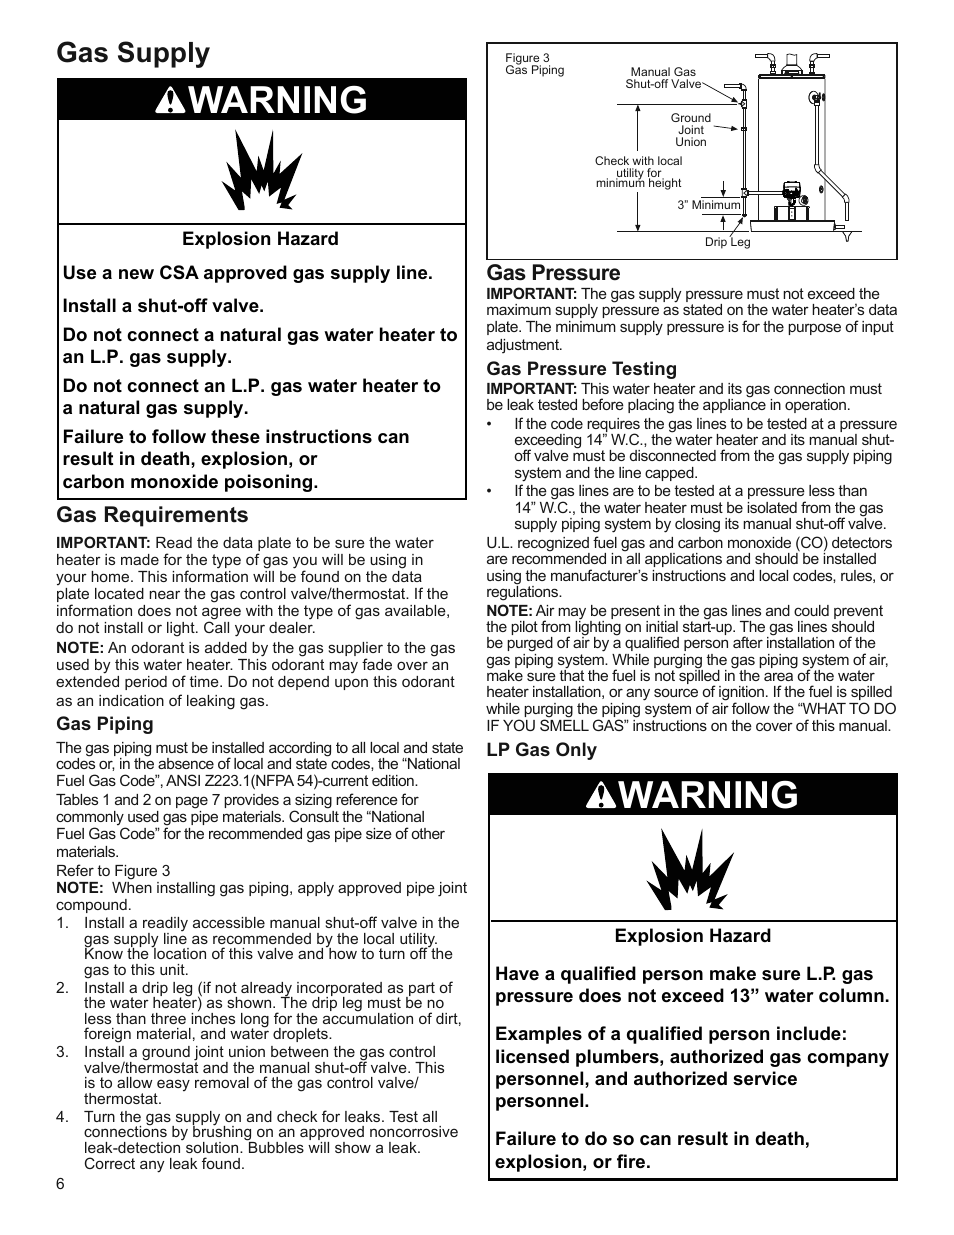 Warning Gas Supply Gas Requirements Whirlpool